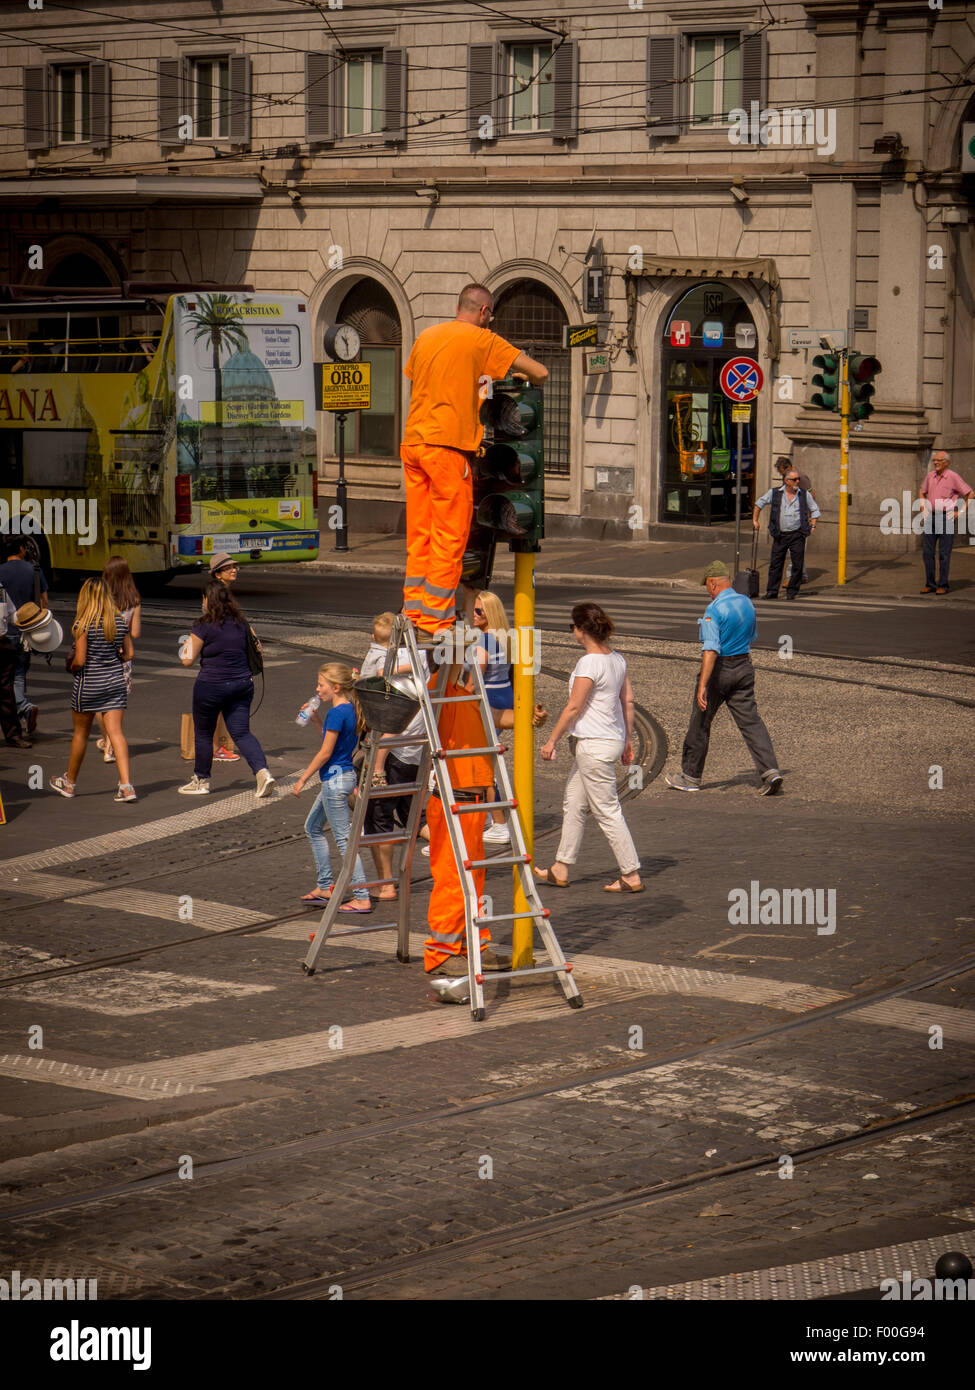 Workmen wearing high visibility orange clothes fixing traffic lights in the middle of a busy road in Rome. Italy. - Stock Image